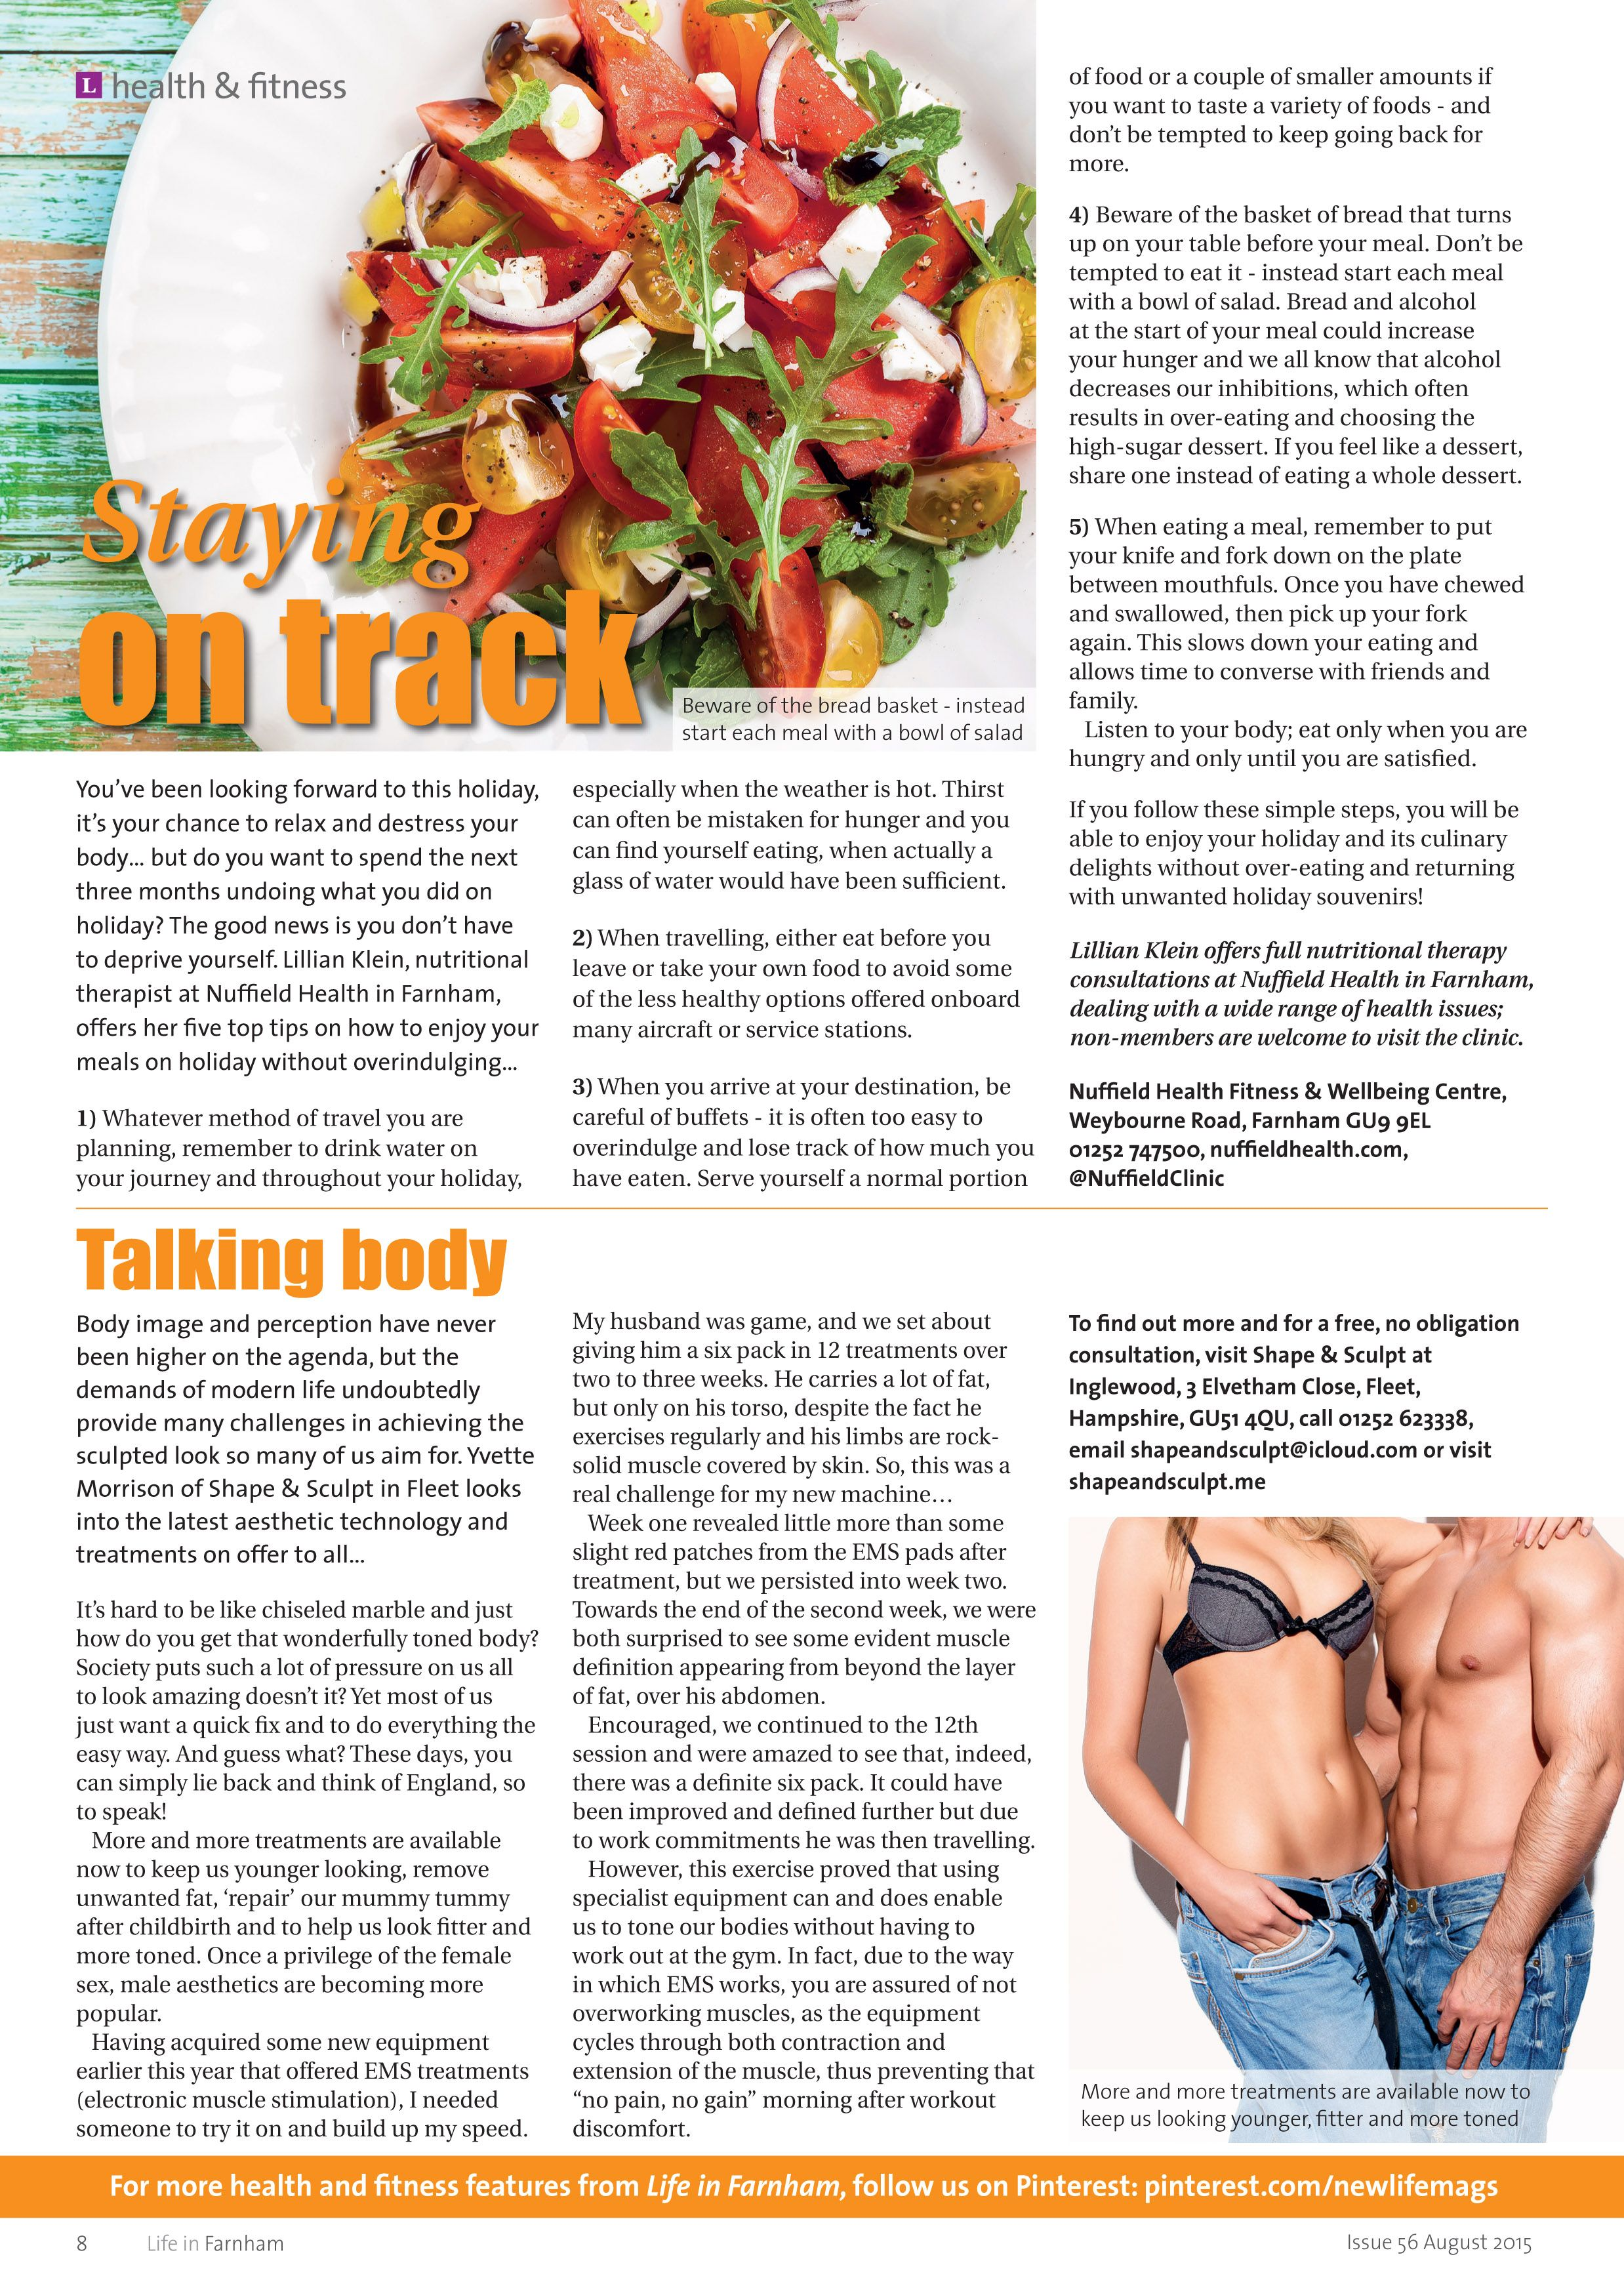 Aesthetic Holiday Staying On Track Top Tips For A Healthy Holiday Talking Body